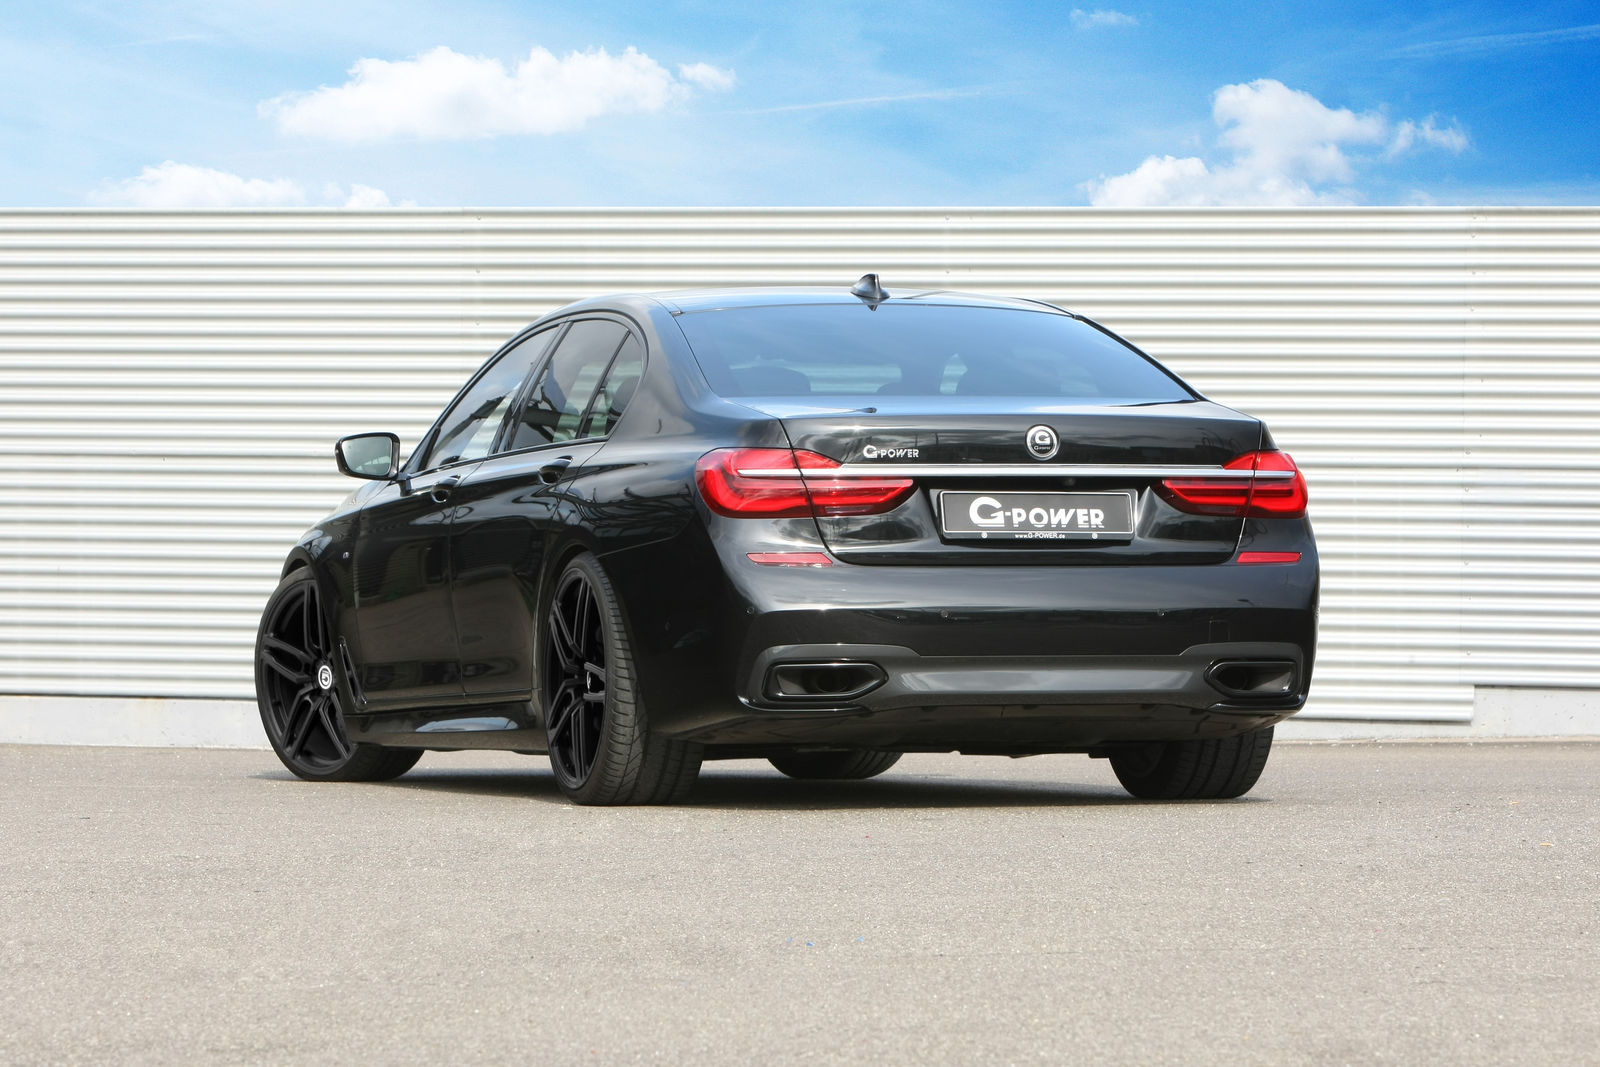 2017 BMW 750d xDrive Launched with 400 HP QuadTurbo 3Liter